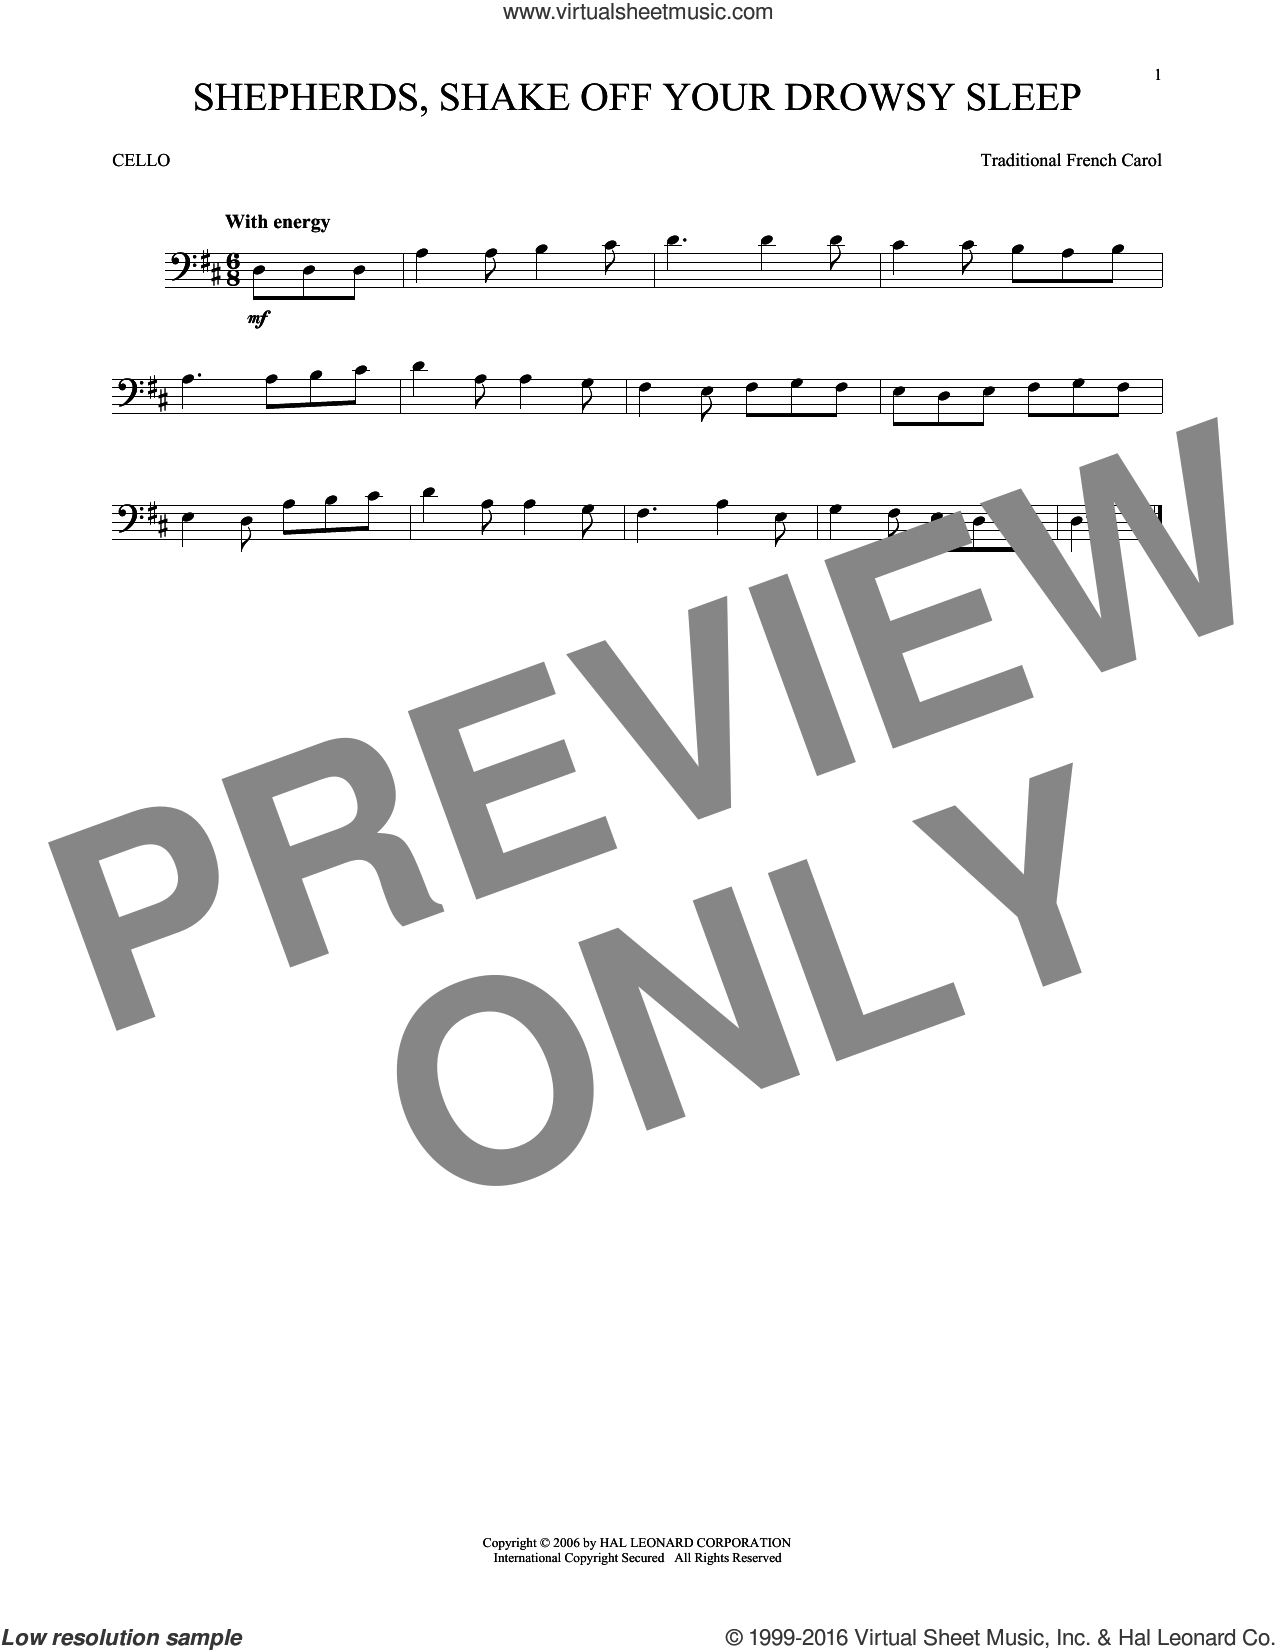 Shepherds, Shake Off Your Drowsy Sleep sheet music for cello solo, intermediate skill level